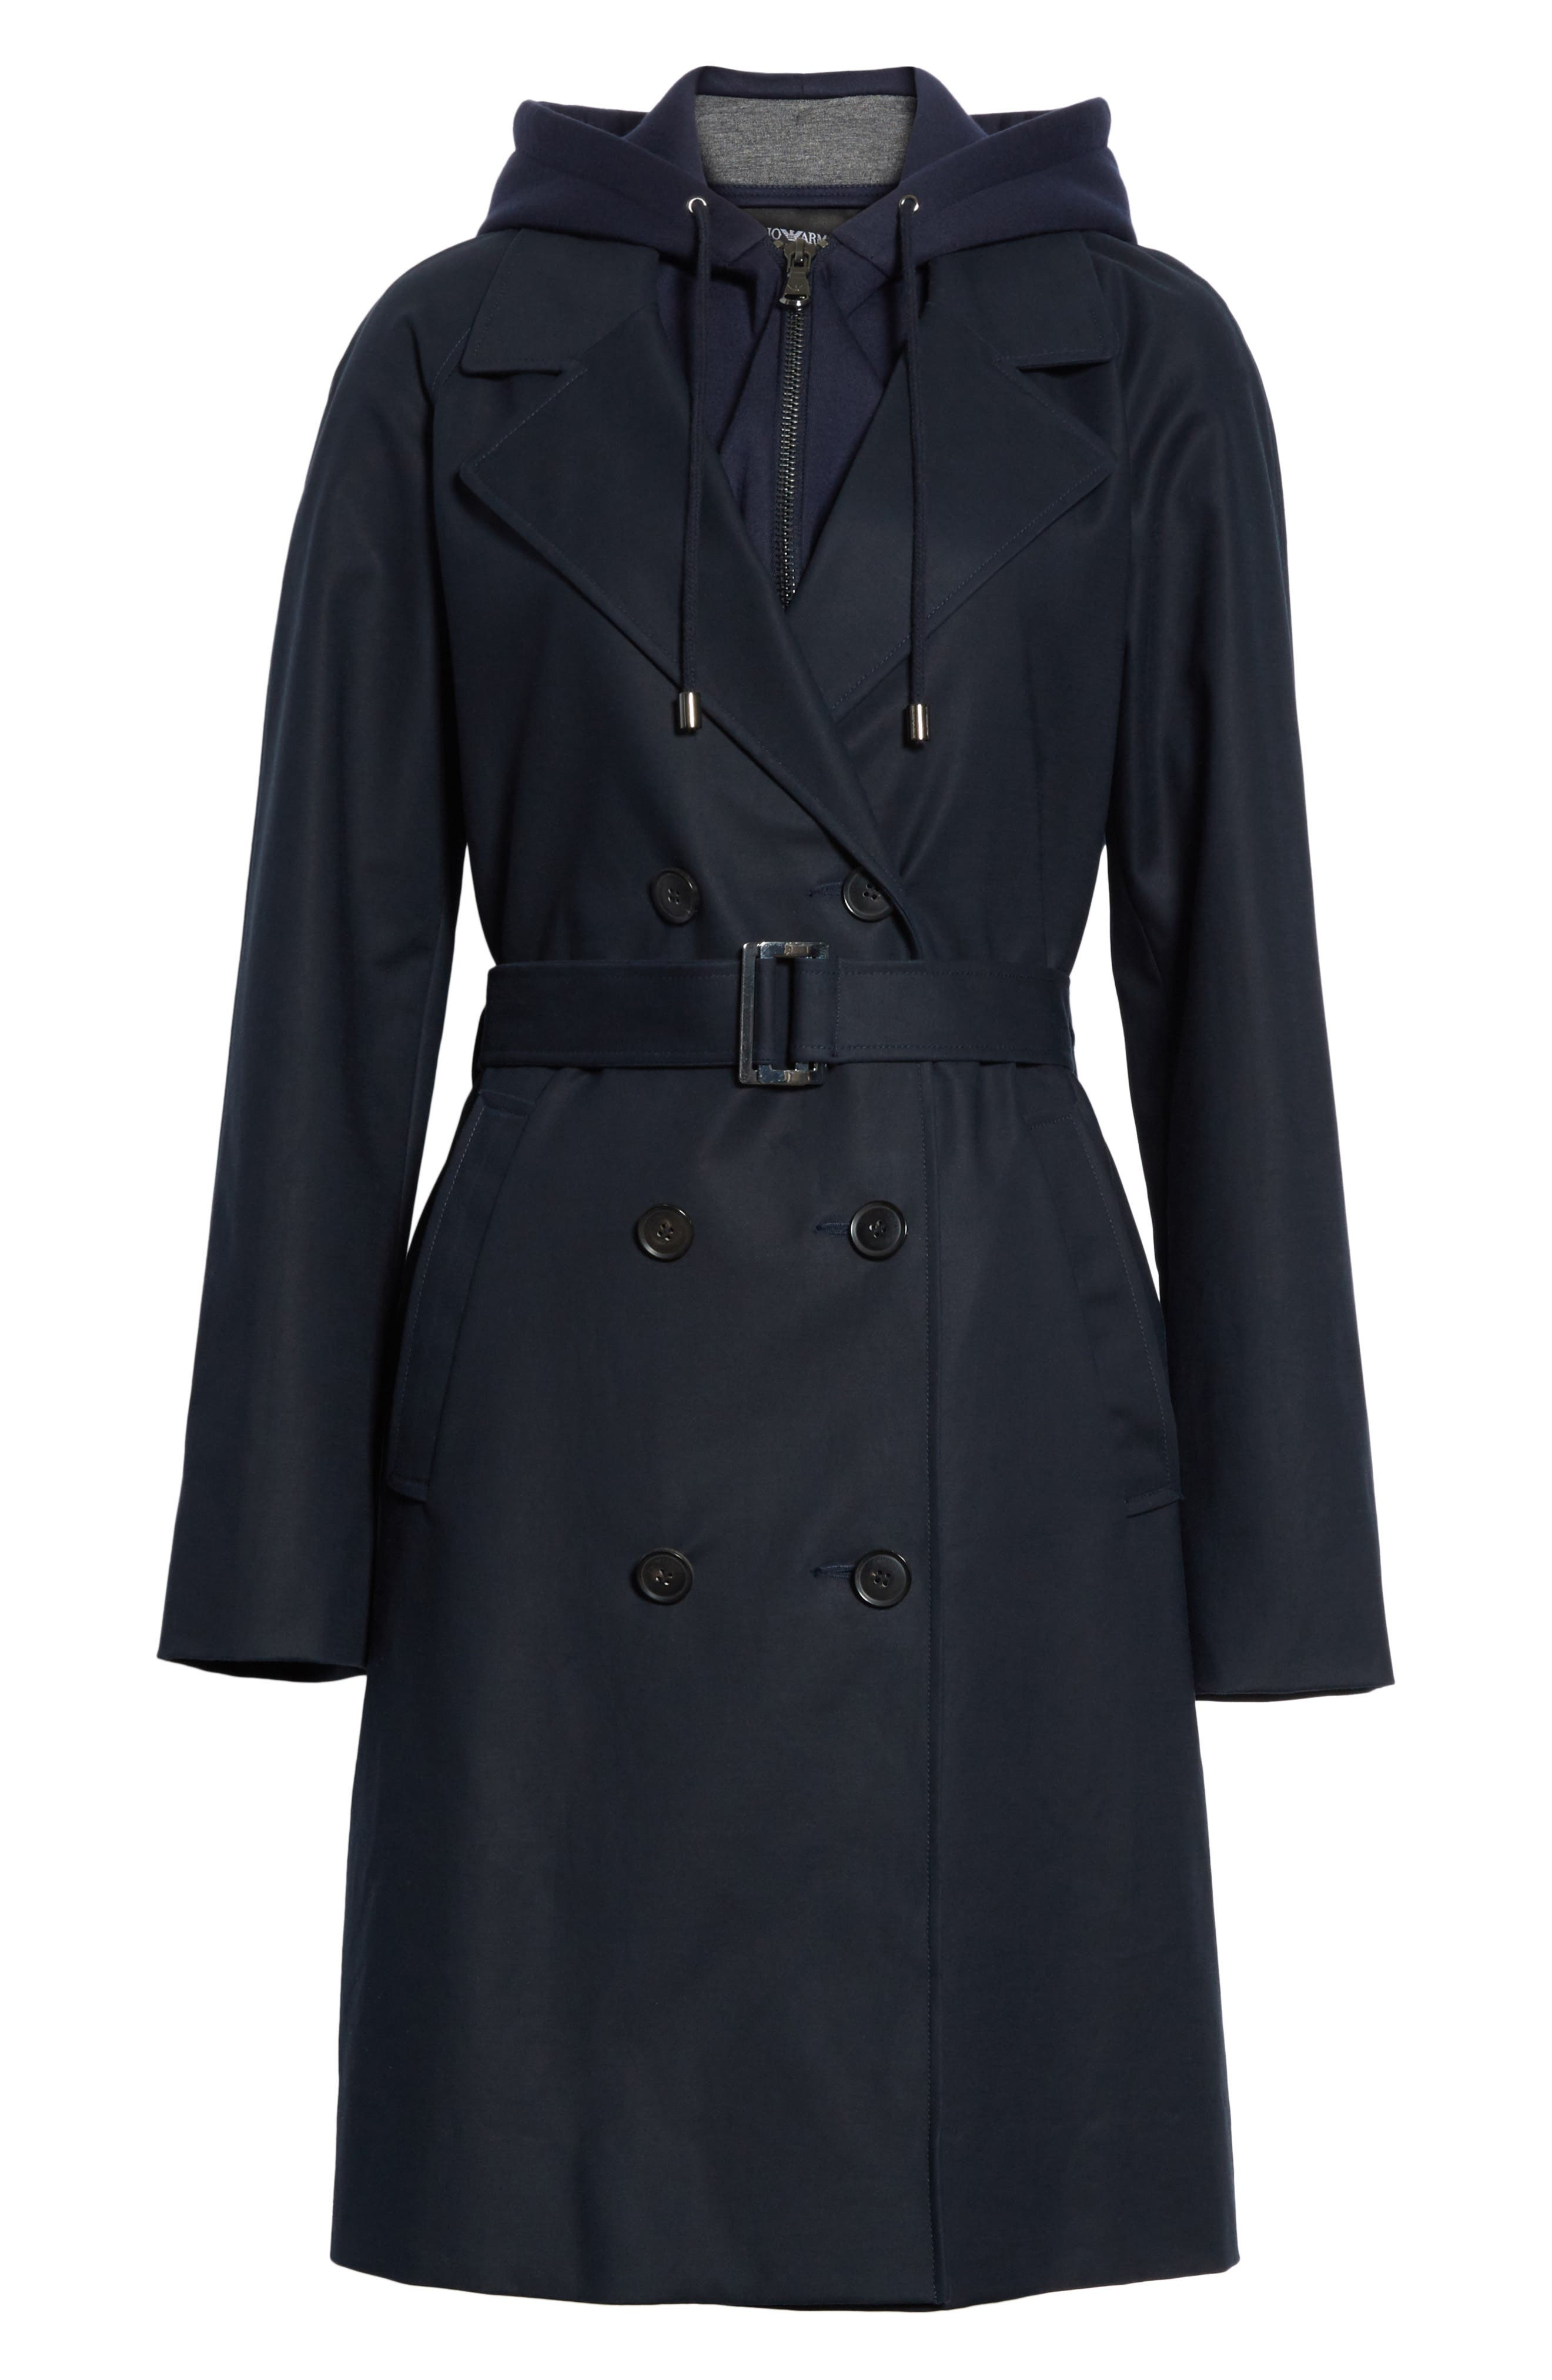 Double Breasted Cotton Blend Trench Coat with Removable Hoodie Inset,                             Alternate thumbnail 6, color,                             414